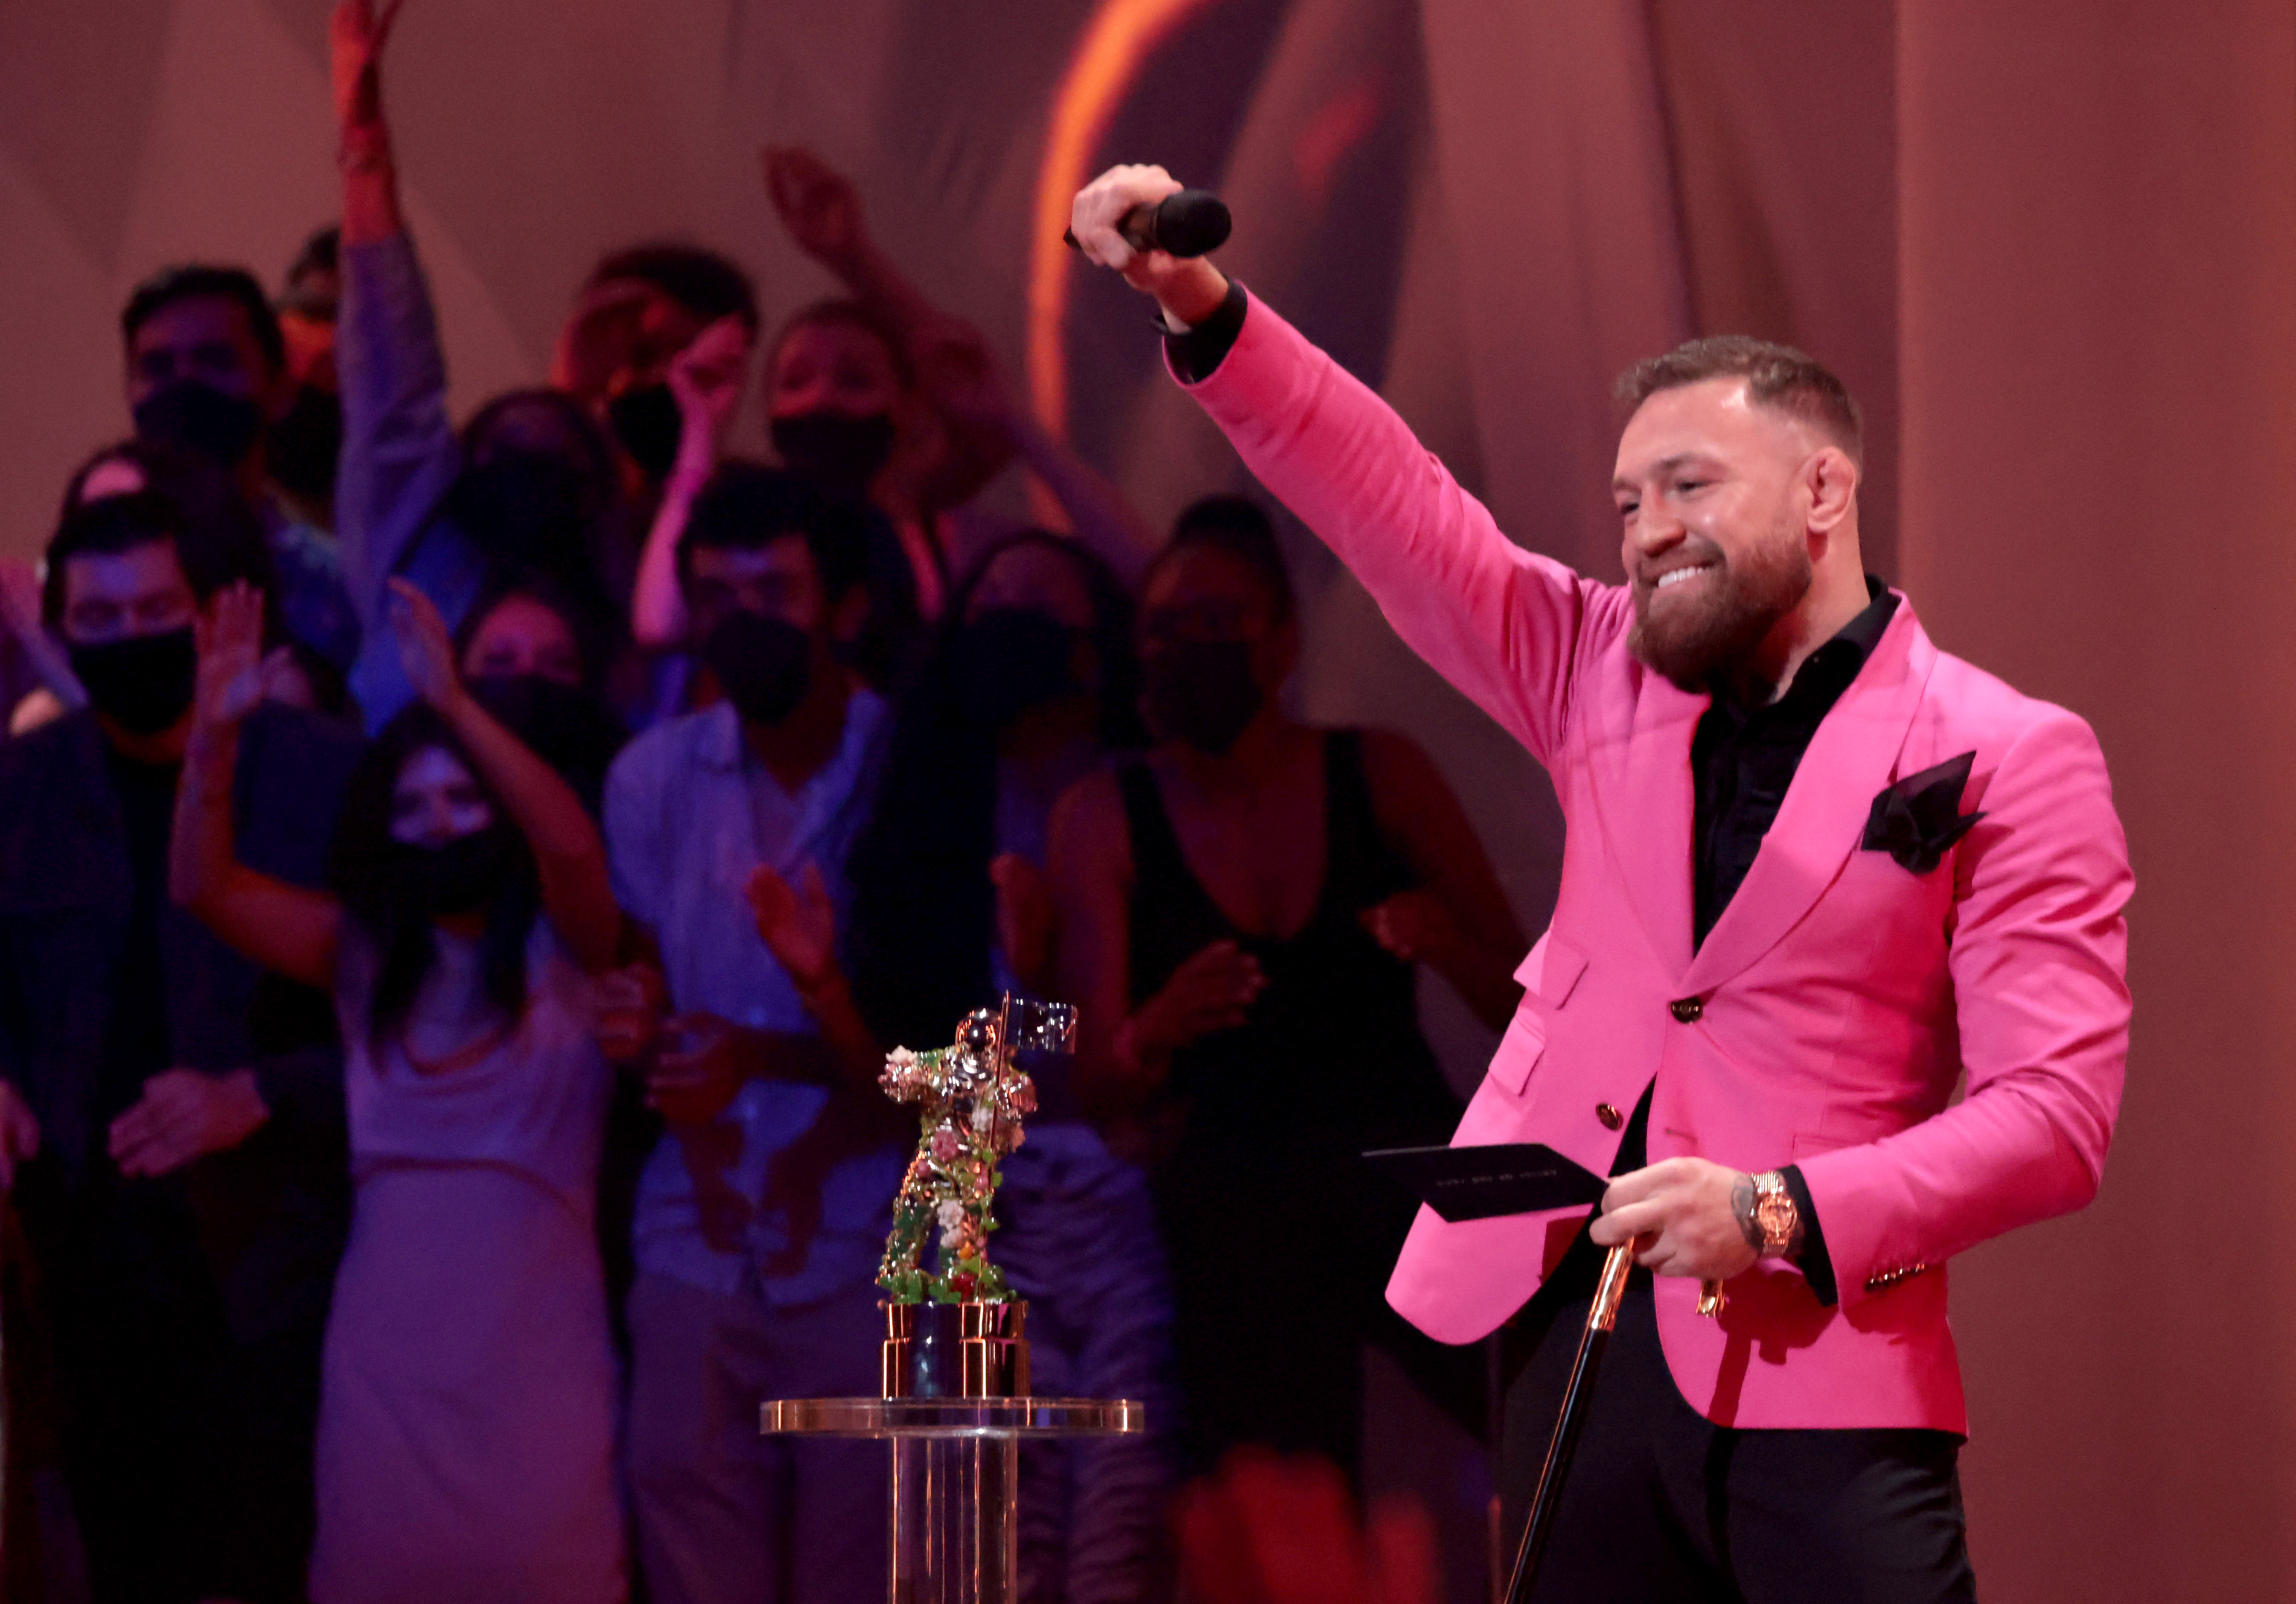 Conor McGregor was an award presenter at the 2021 MTV Video Music Awards this past weekend.